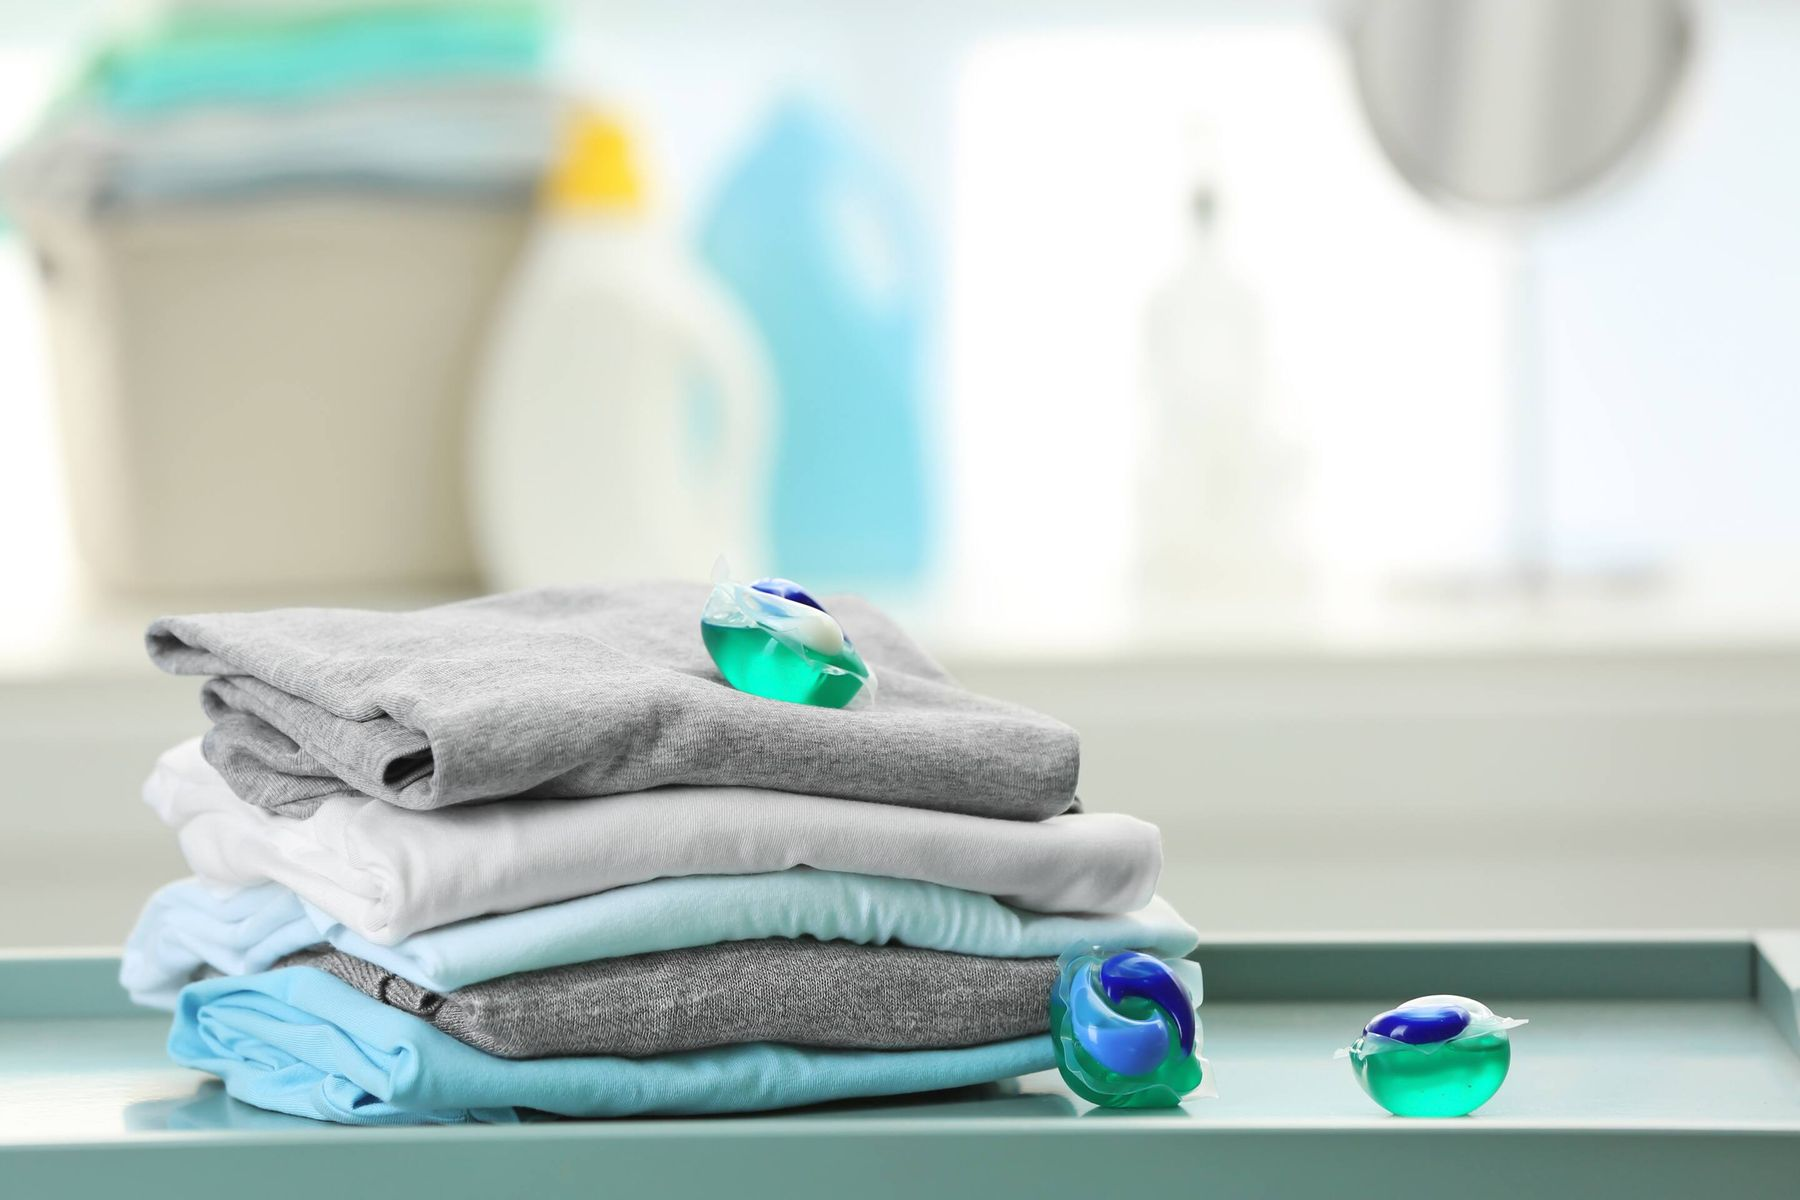 how to keep kids safe from washing capsules - the definitive guide